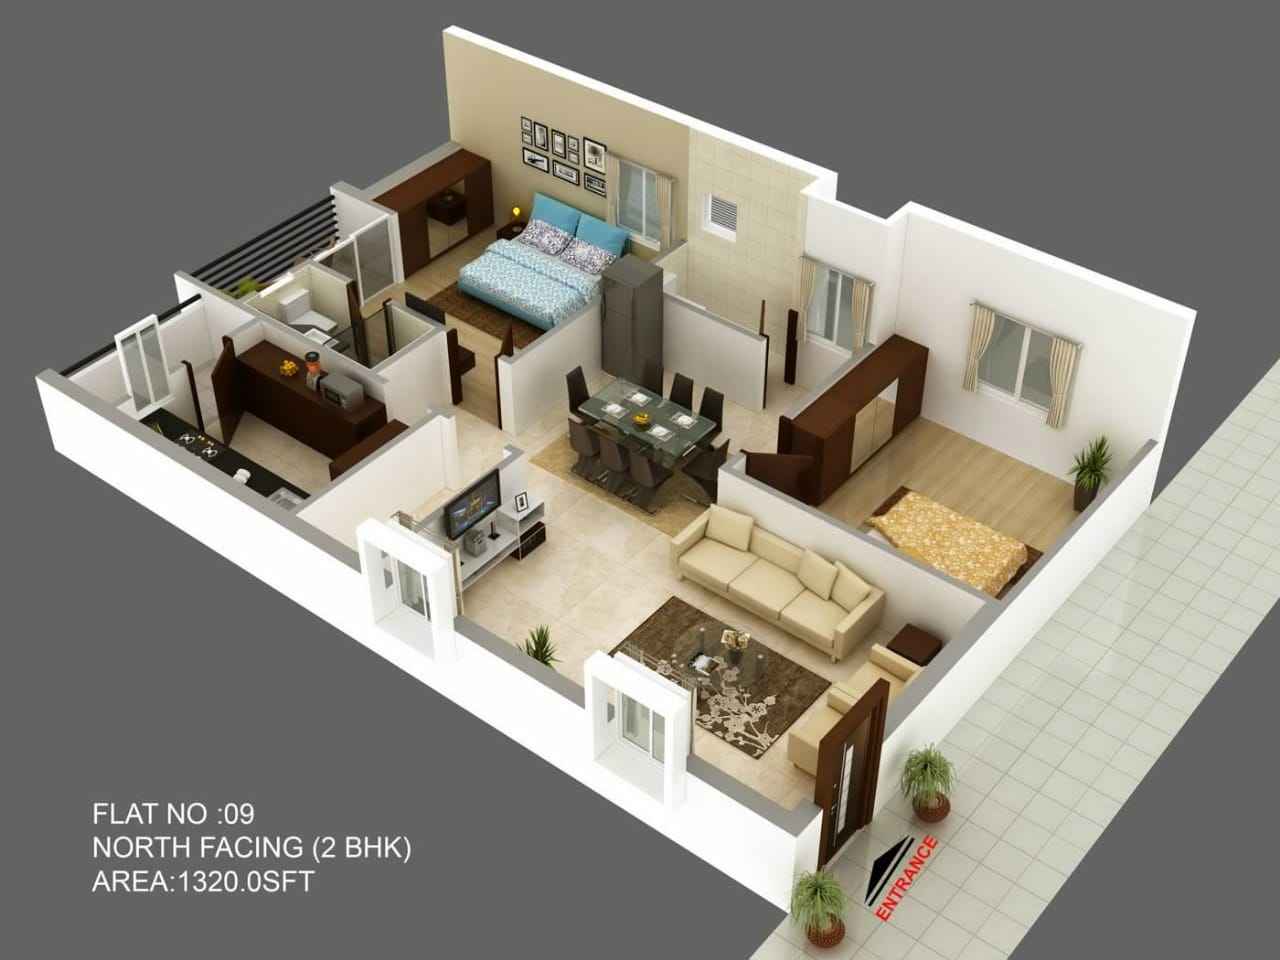 R7 INTERIORS, INTERIOR DECORATOR IN HYDERABAD, INTERIOR DECORATOR IN SECUNDERABAD, INTERIOR DECORATOR IN GOPANPALLY, INTERIOR DECORATOR IN GACHIBOWLI, INTERIOR DECORATOR IN KOKAPET, INTERIOR DECORATOR IN NARSINGI,